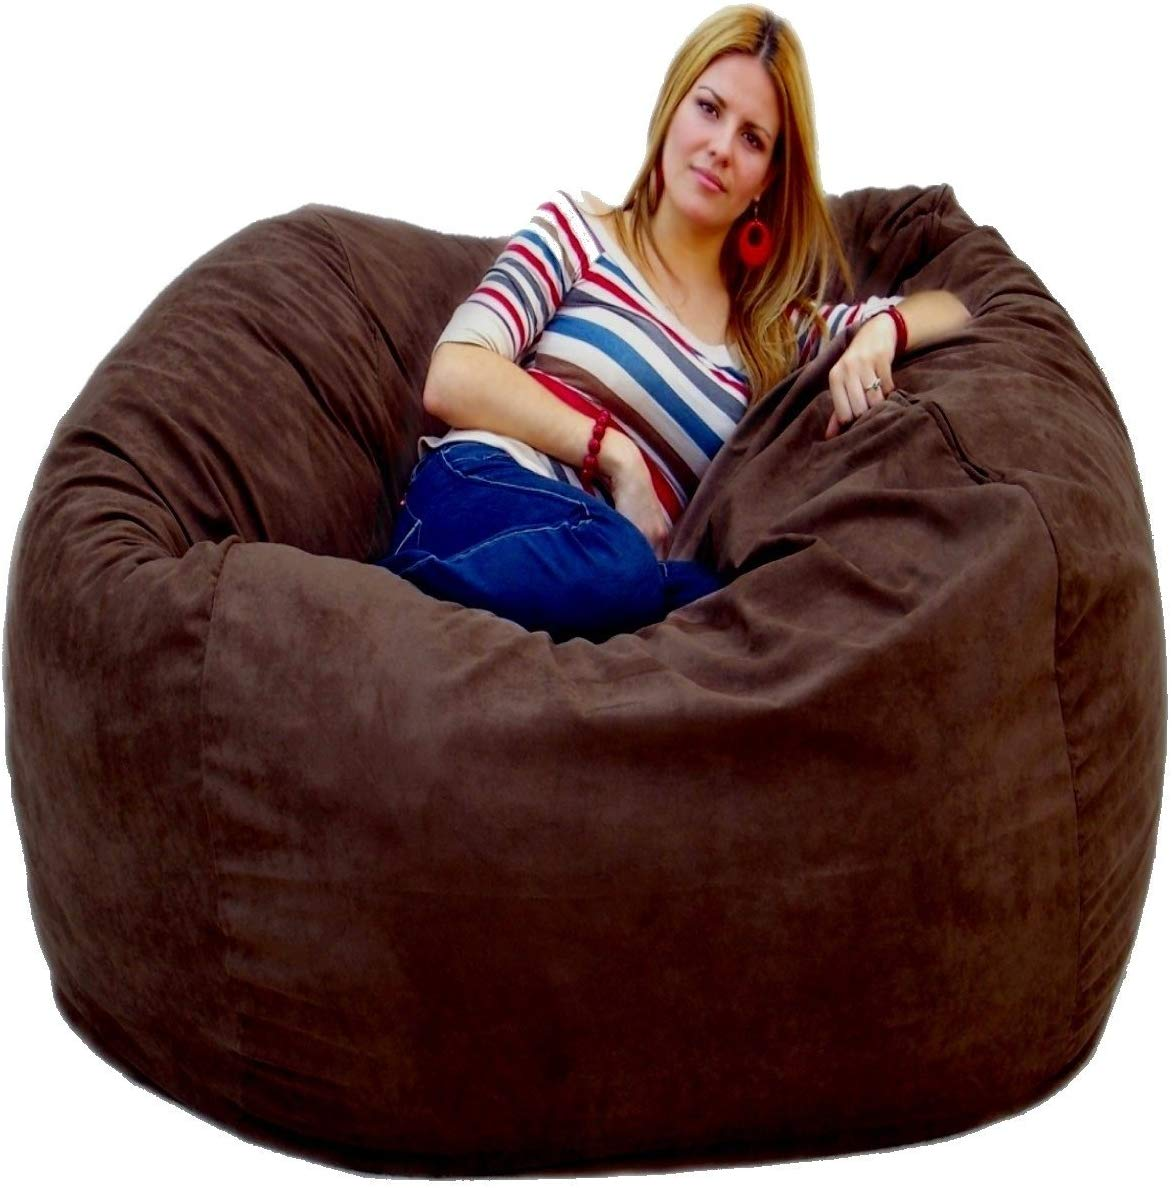 Cozy Sack 5-Feet Bean Bag Chair, Large, Chocolate